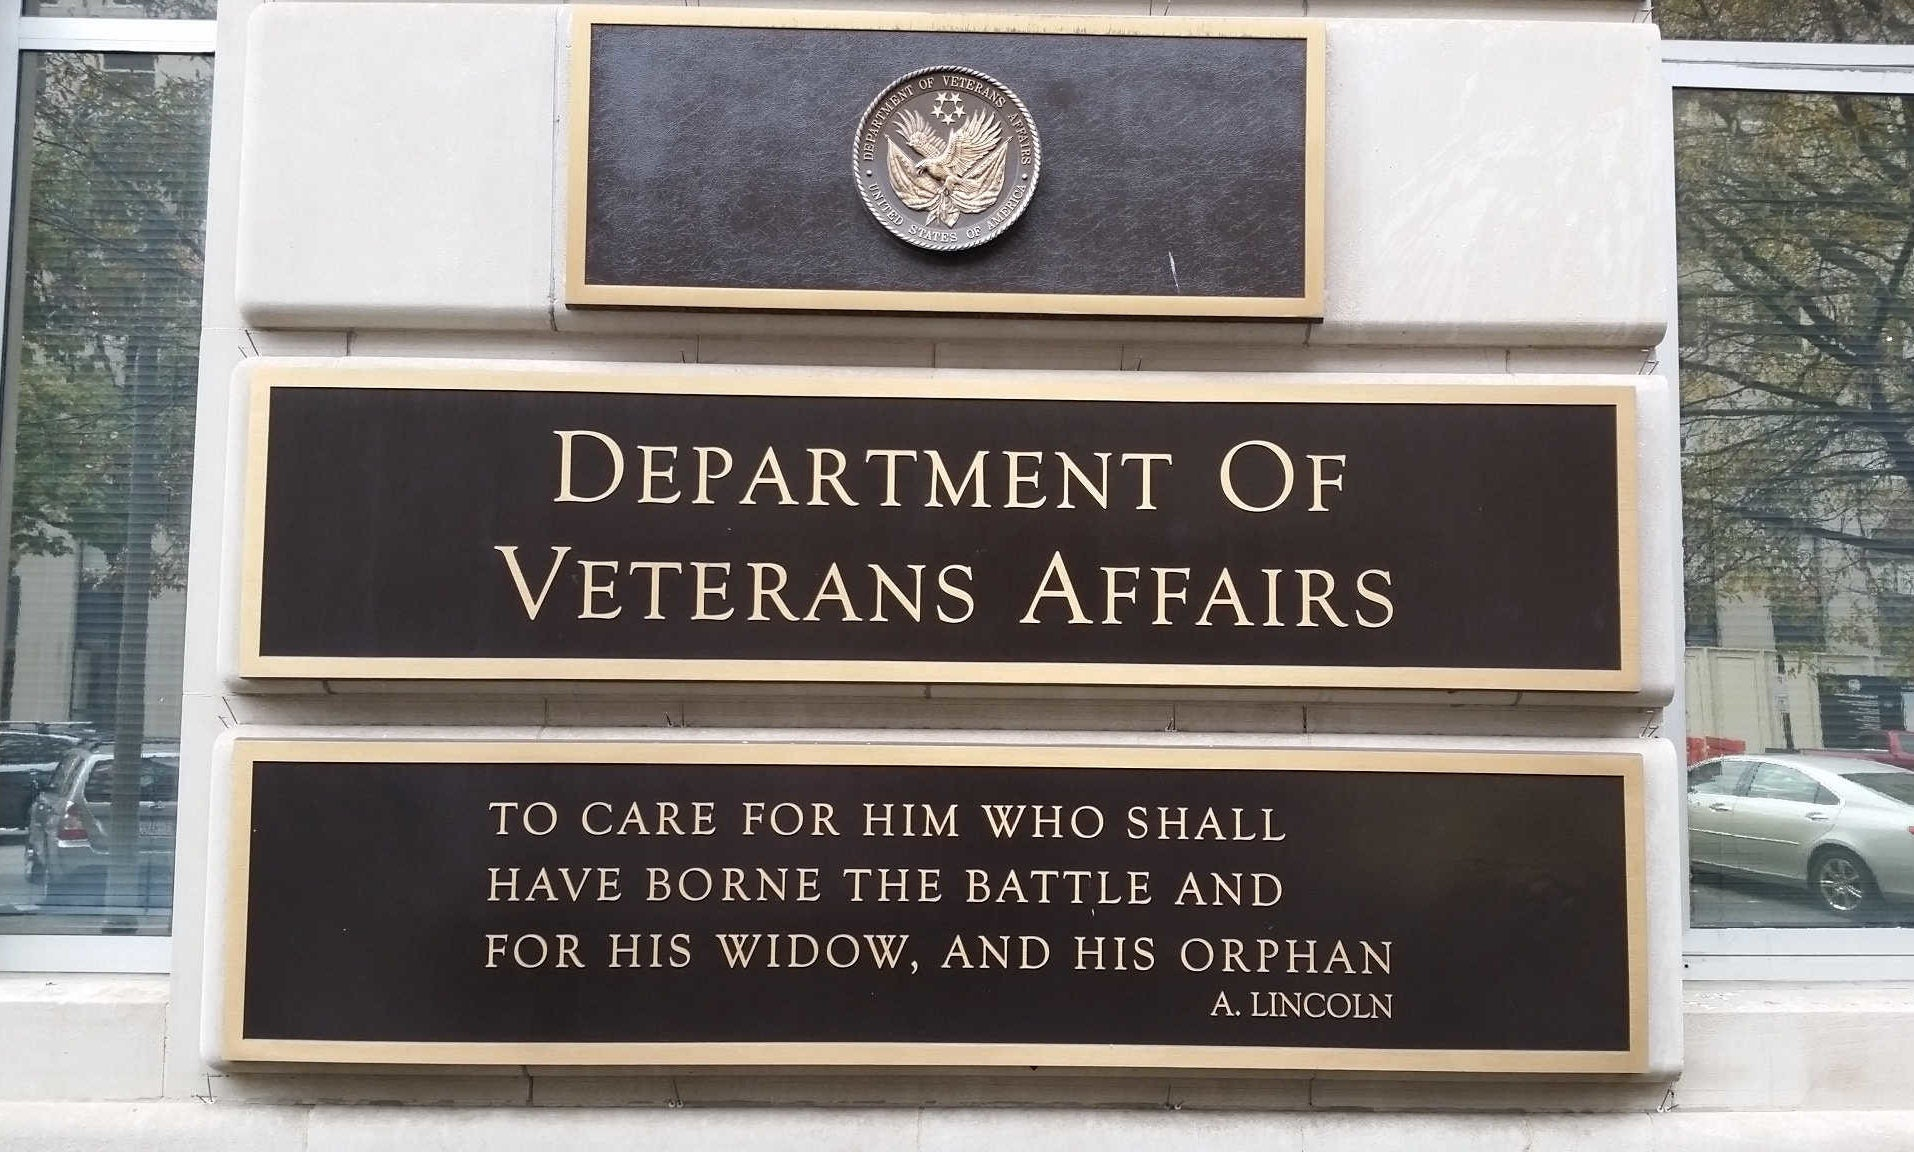 The most important organization for vets you may not even know about